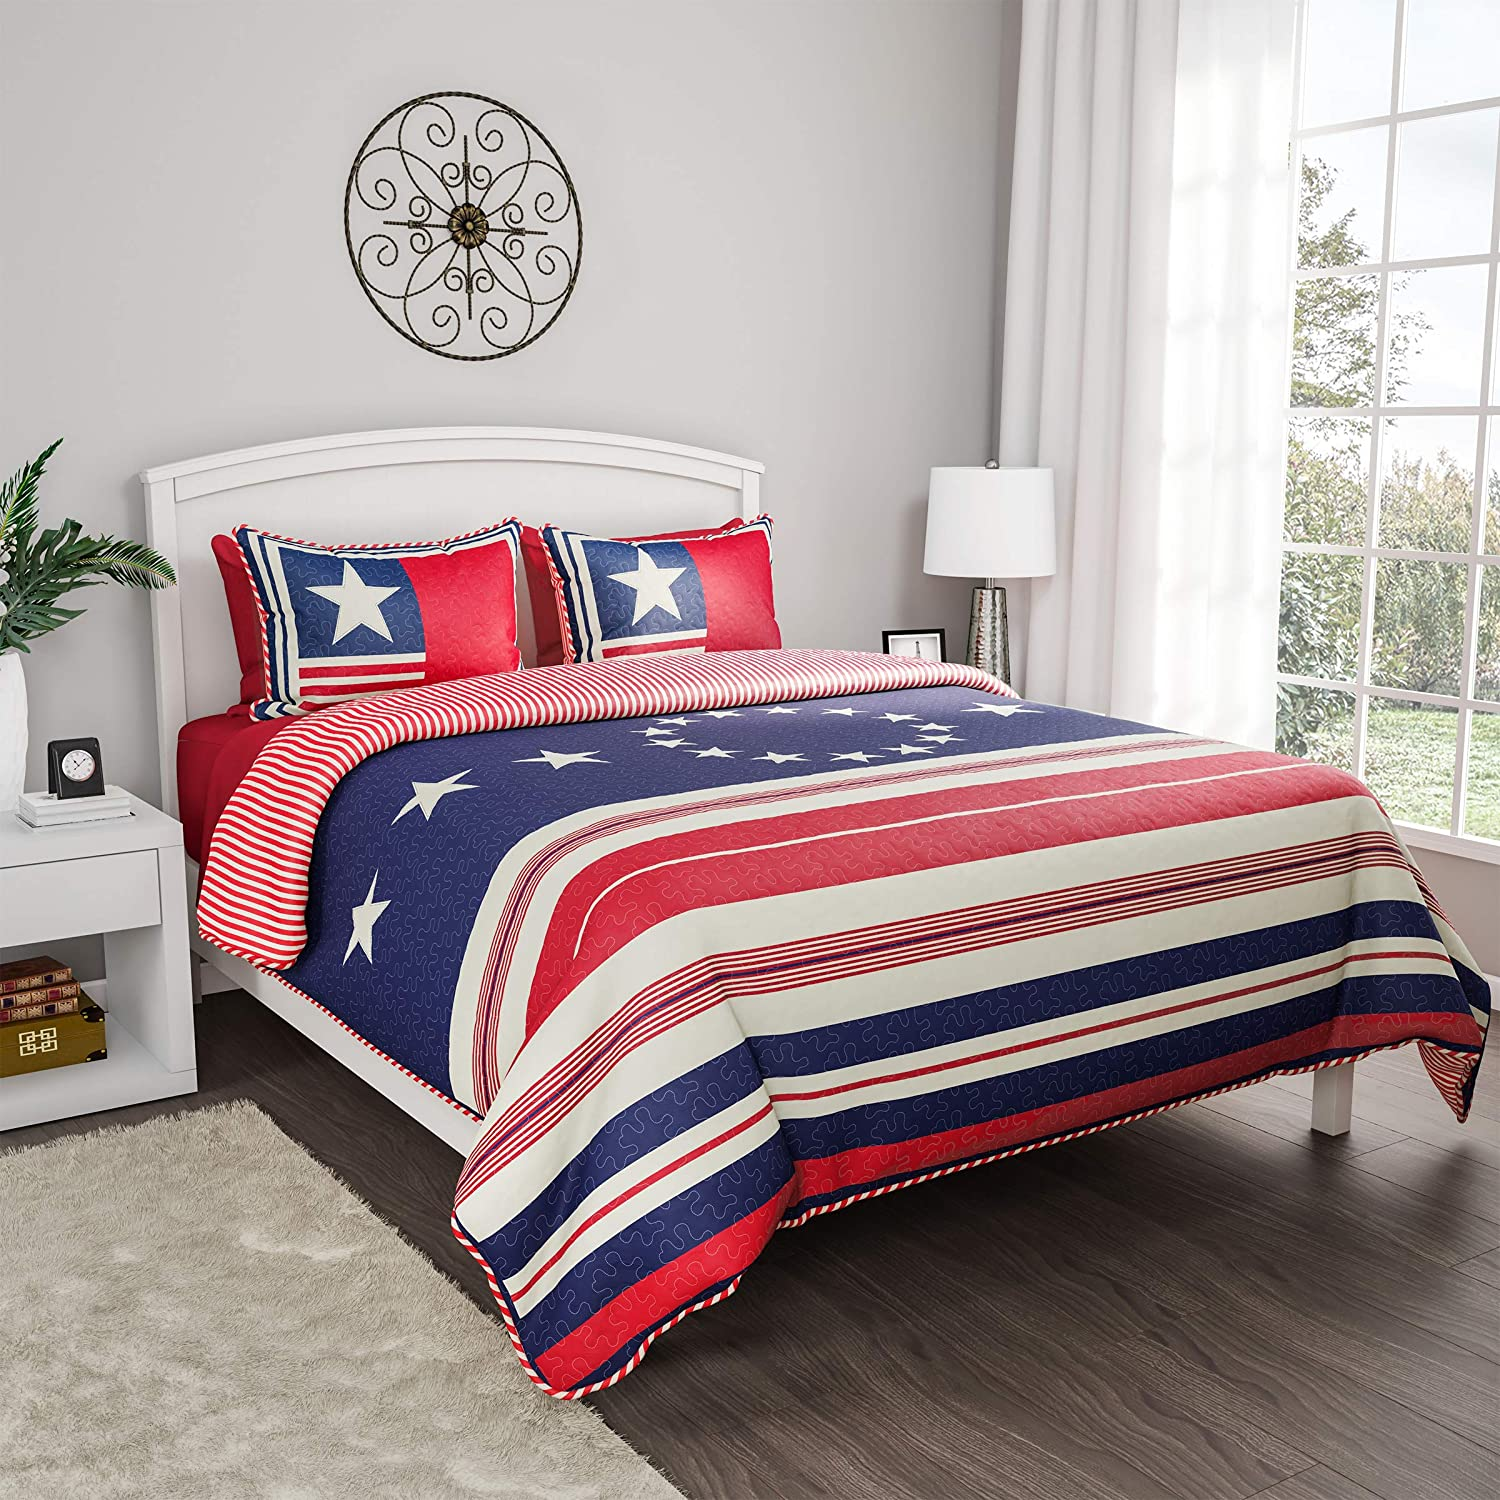 Lavish Home Collection 3-Piece Quilt and Bed Set – Hypoallergenic Microfiber Glory Bound Patriotic Americana Flag Print All-Season Blanket with Shams (King)